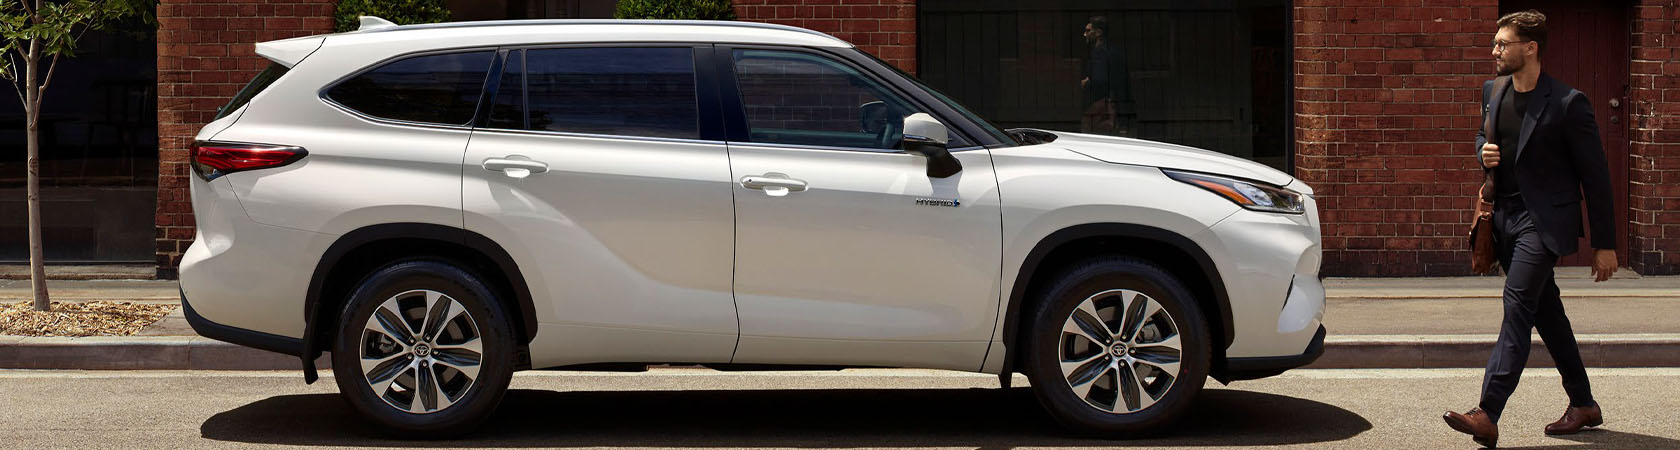 Lockyer Valley Toyota Kluger